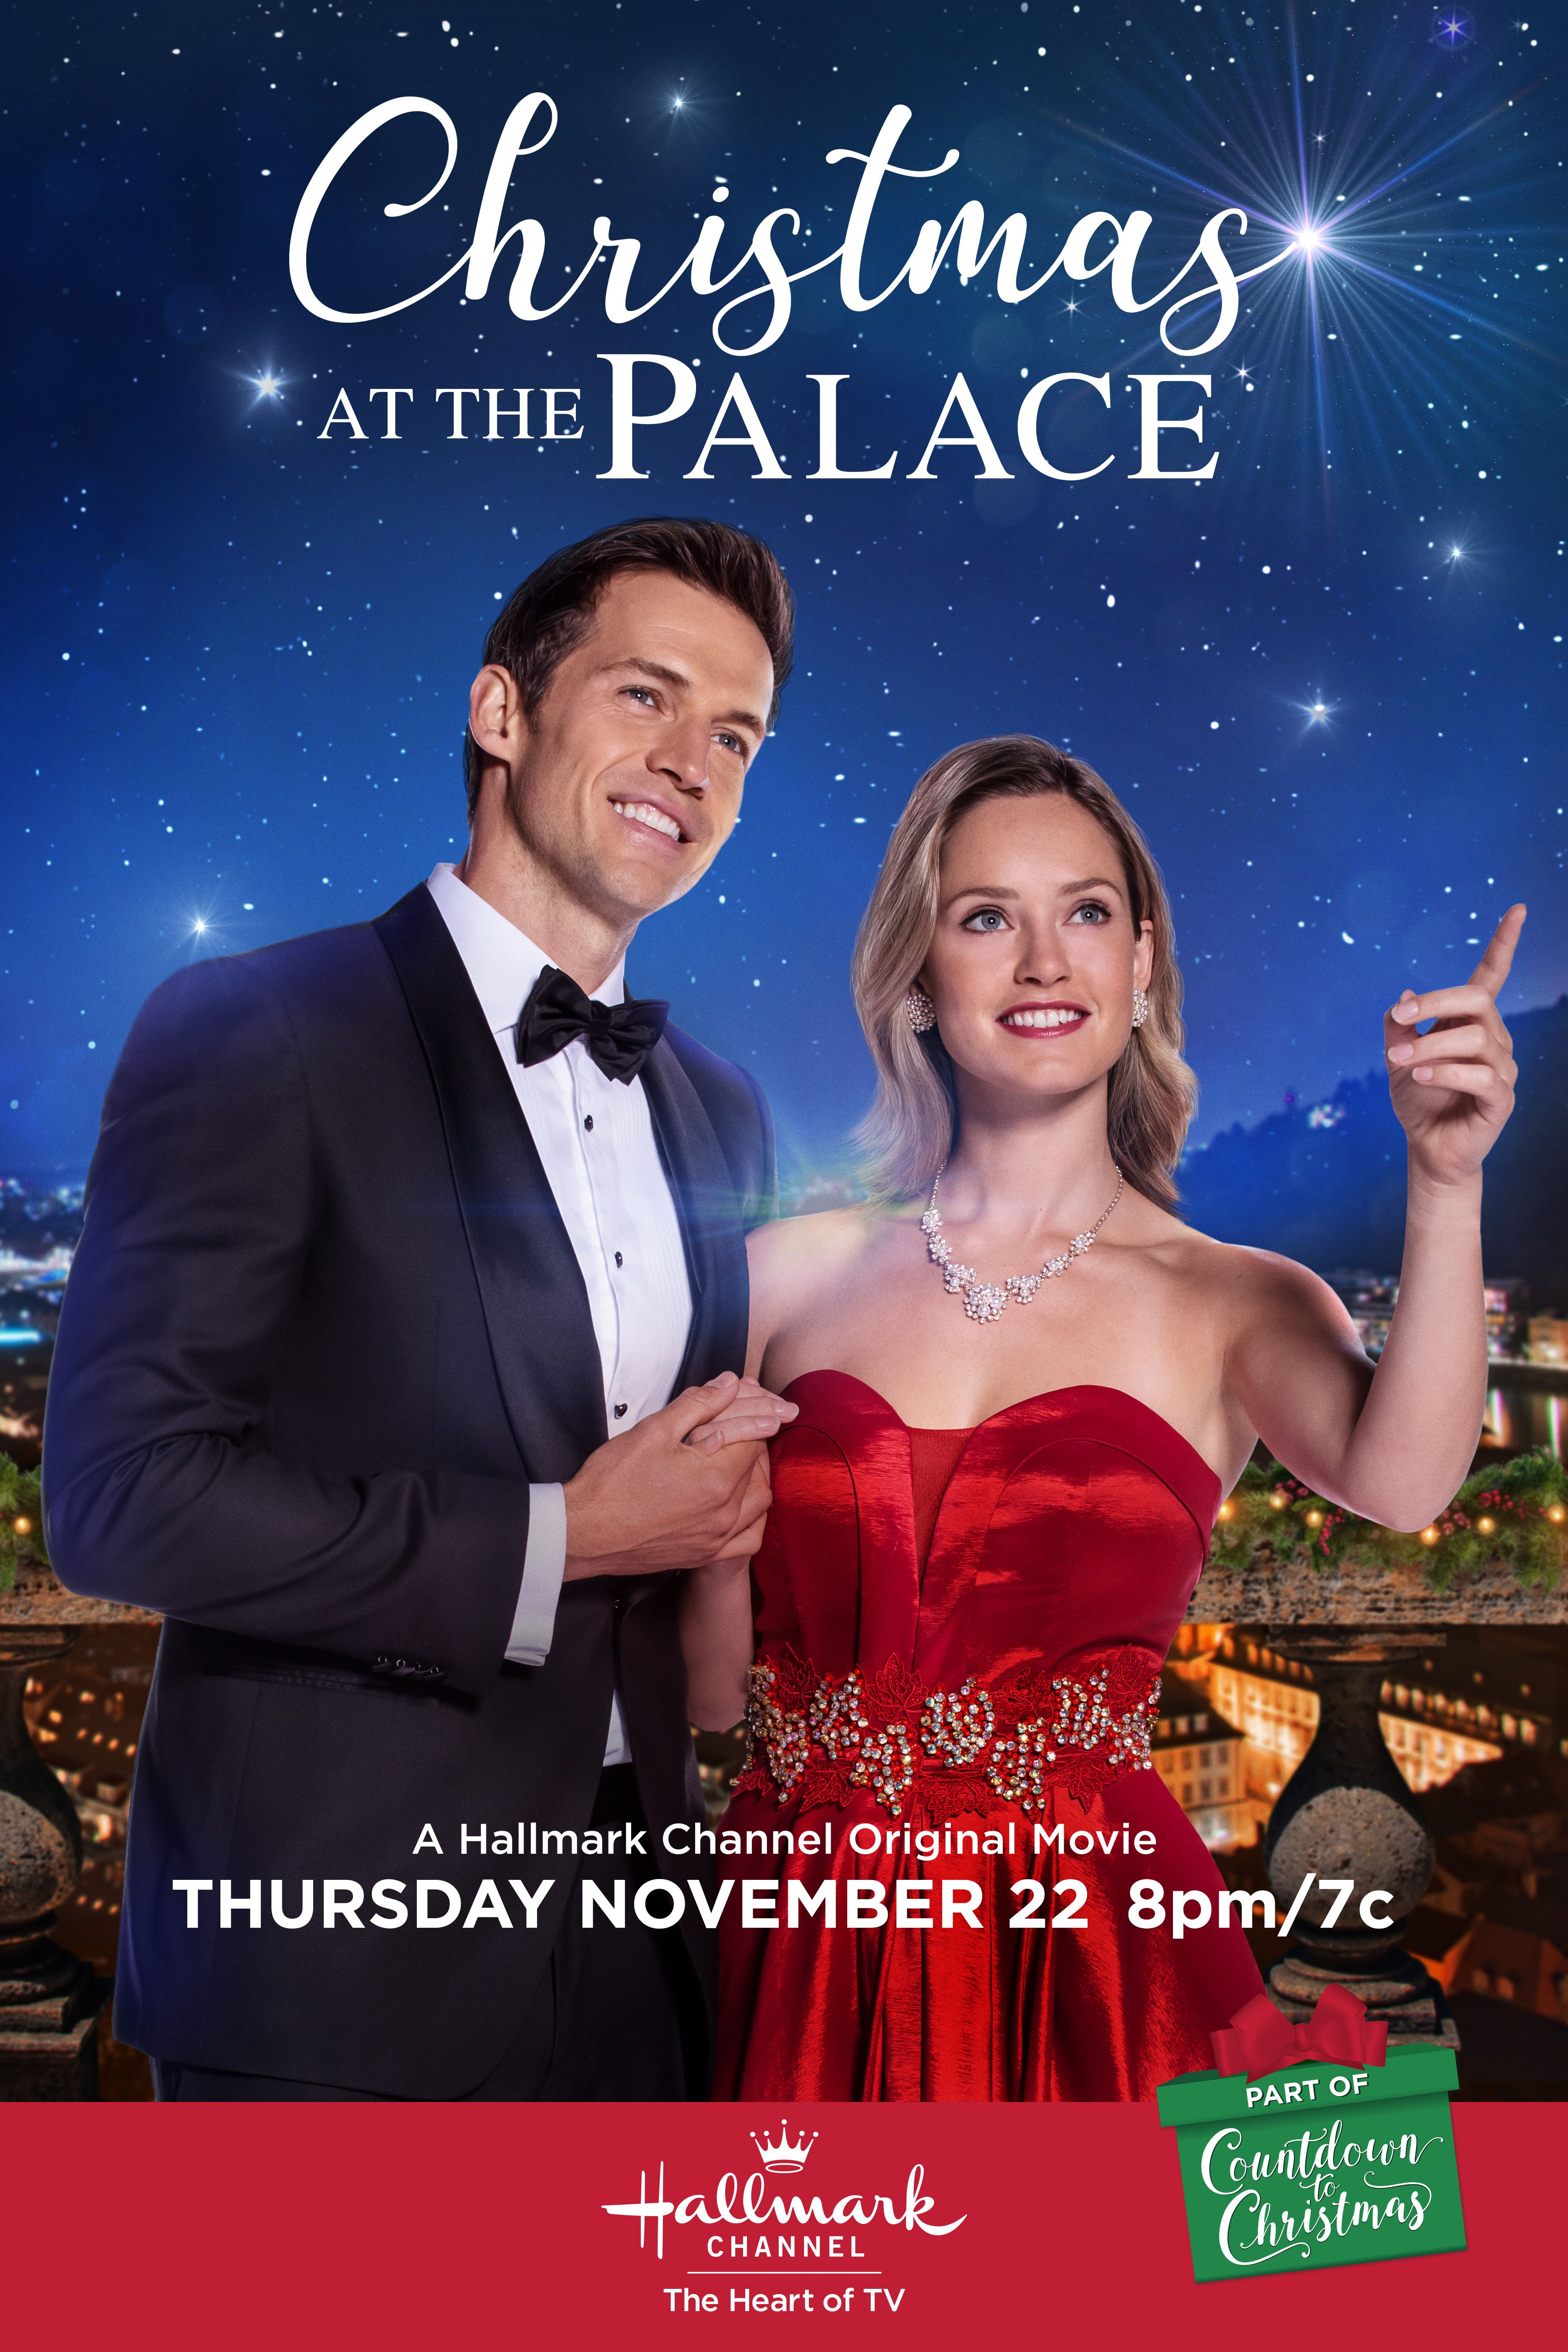 Merritt Patterson And Andrew Cooper Whisk You Away To Christmas